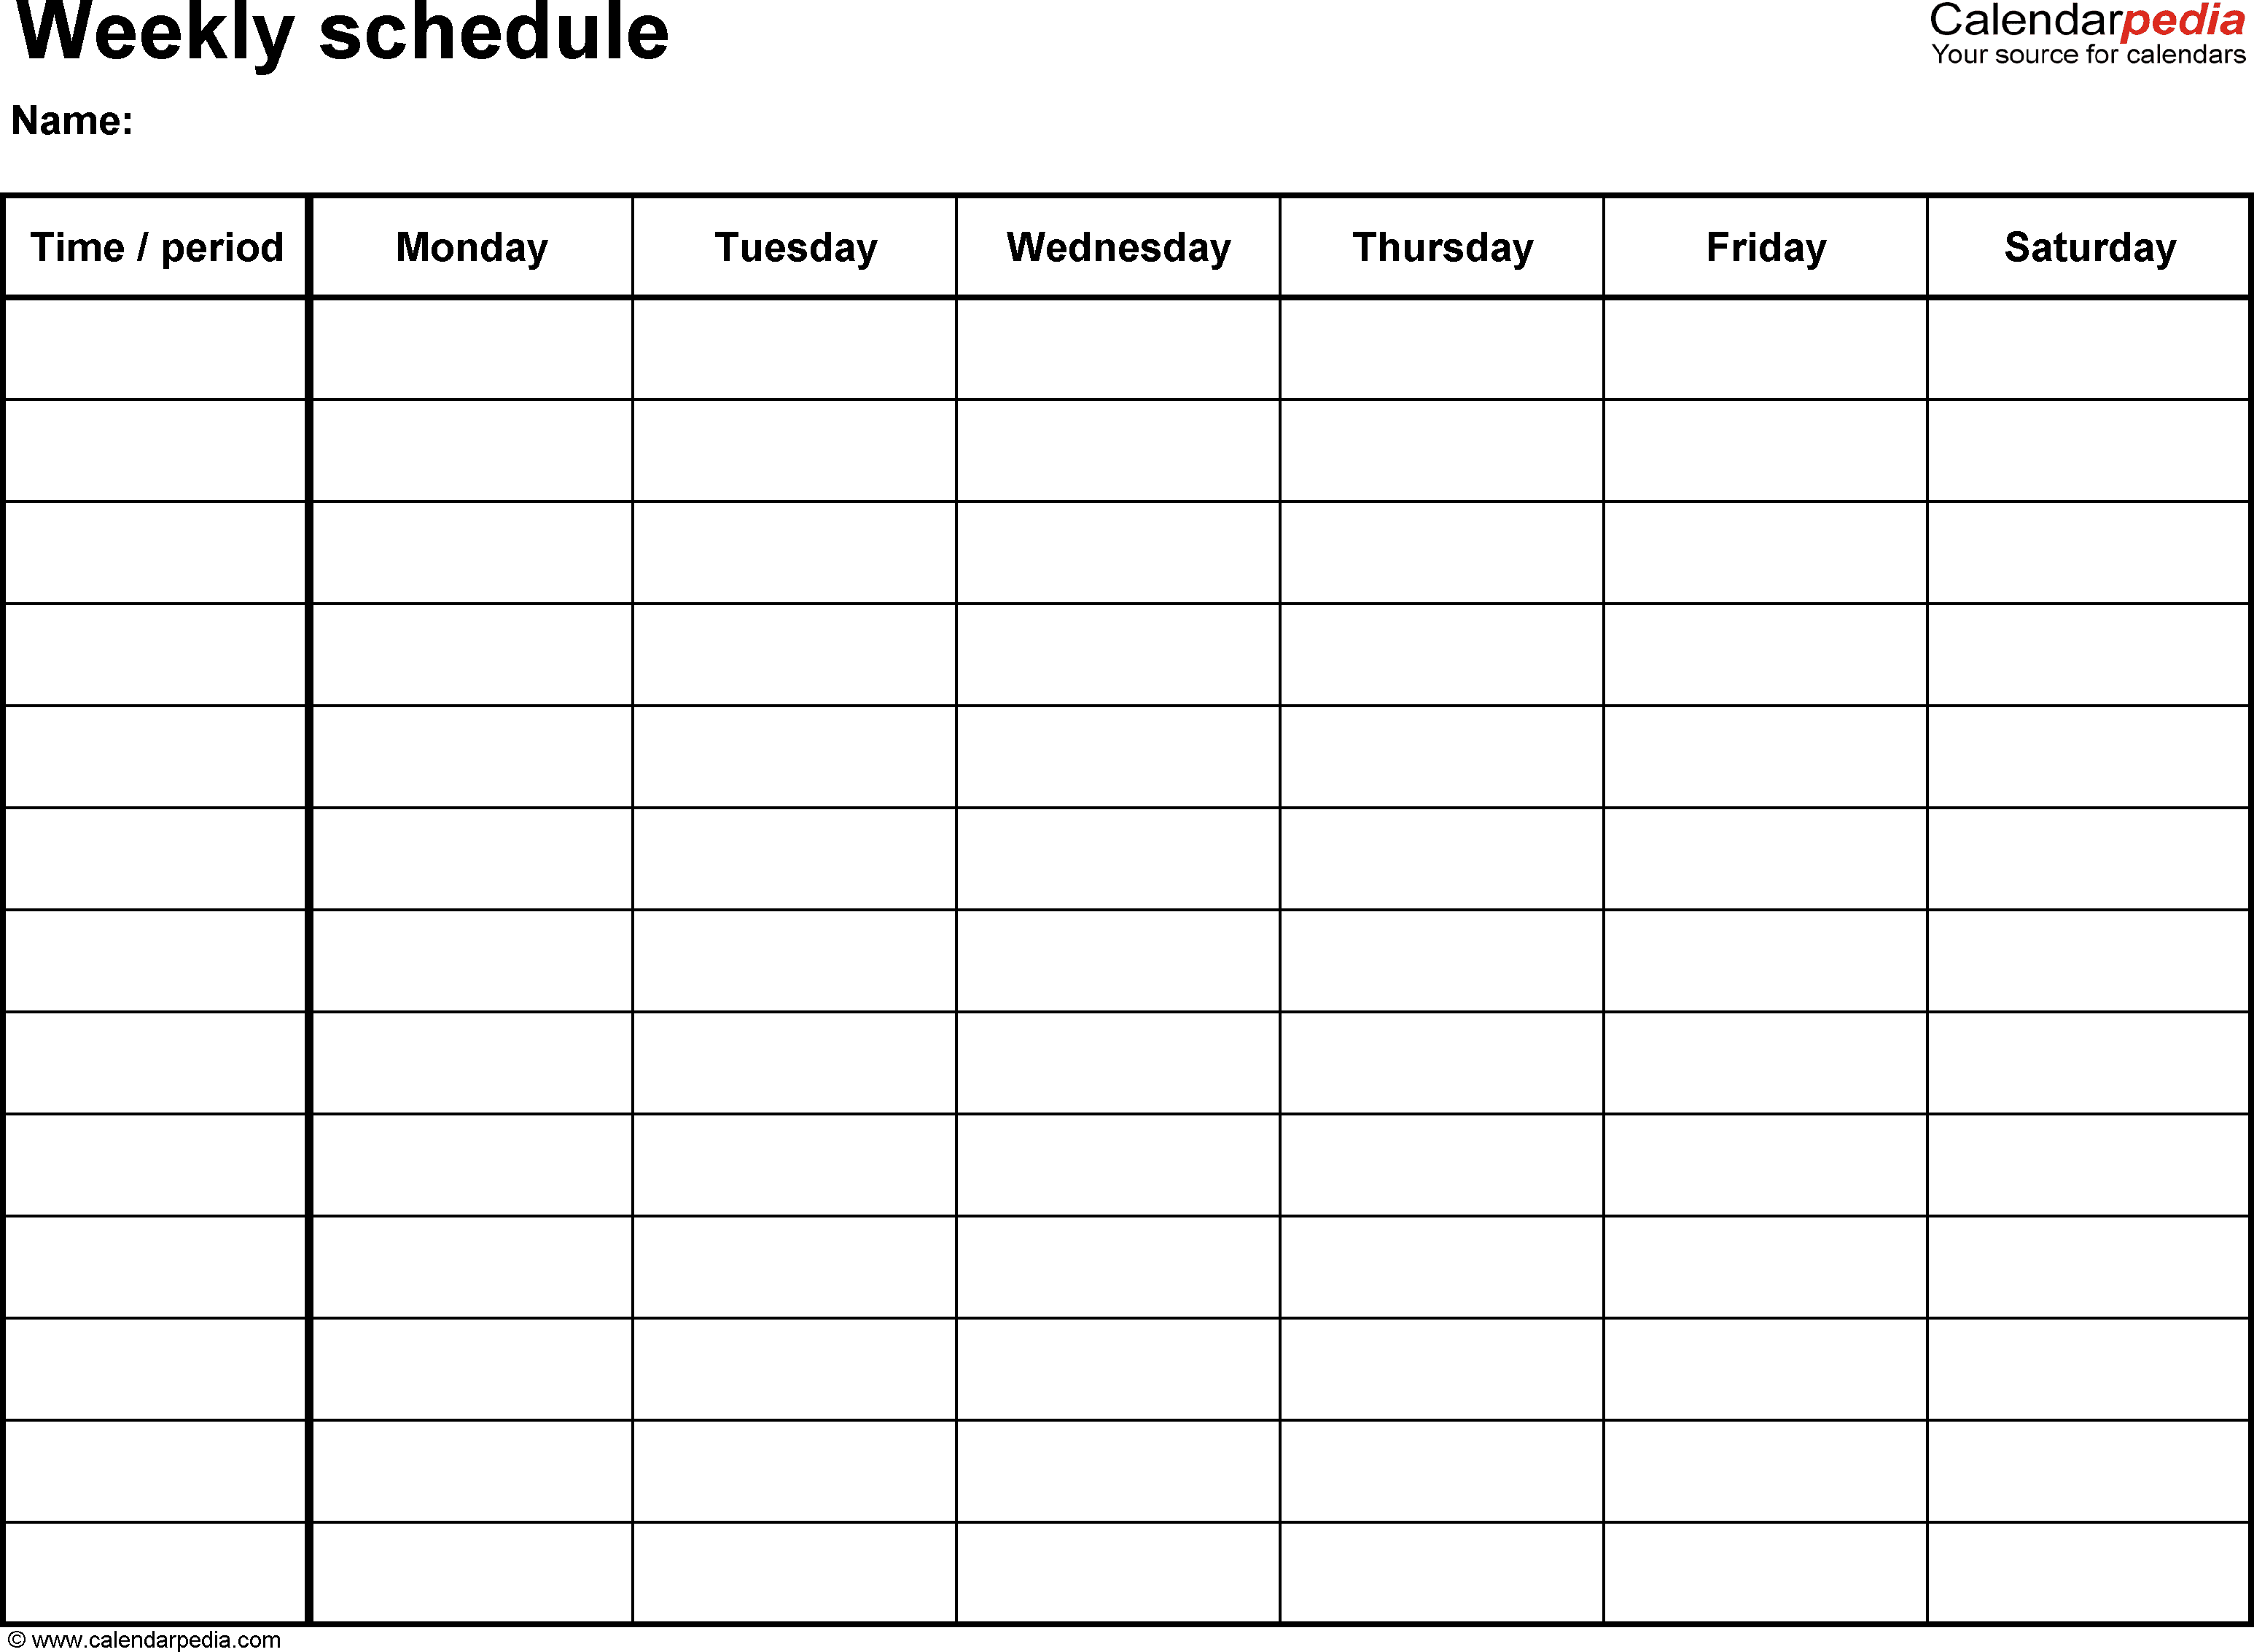 28 Images of Weekly Schedule Template Availability | geldfritz.net